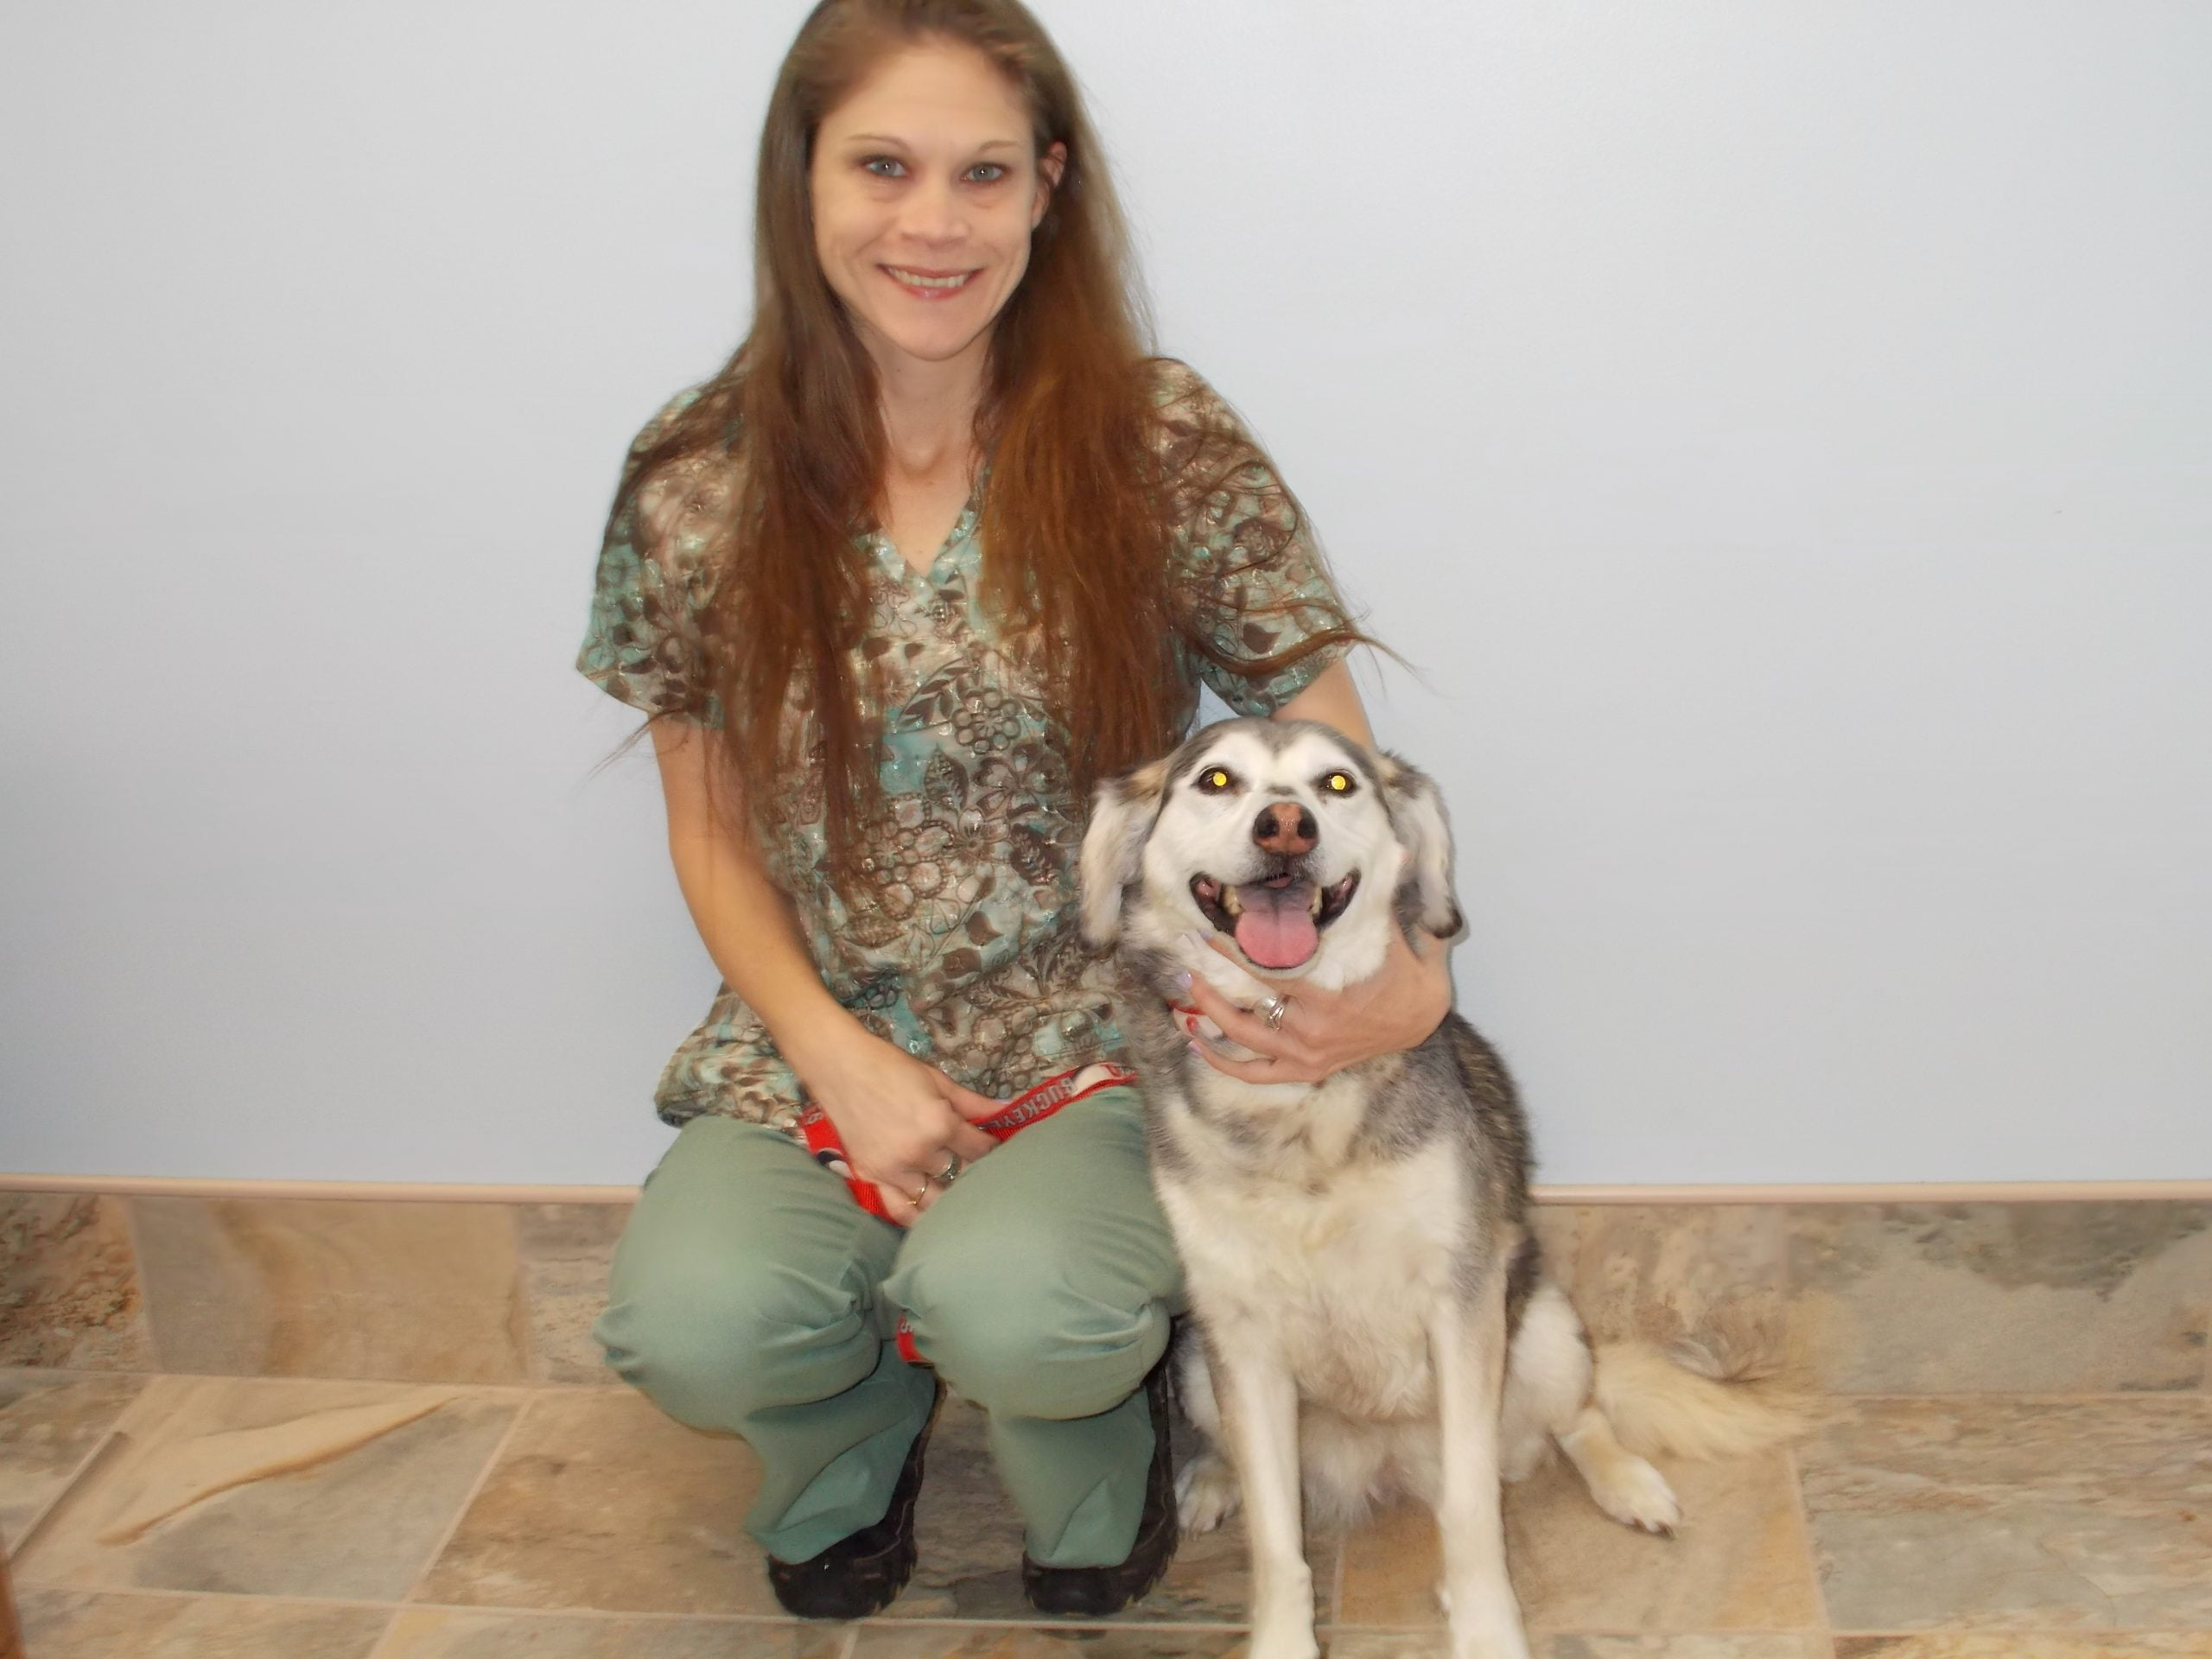 Team member Samantha with a happy dog